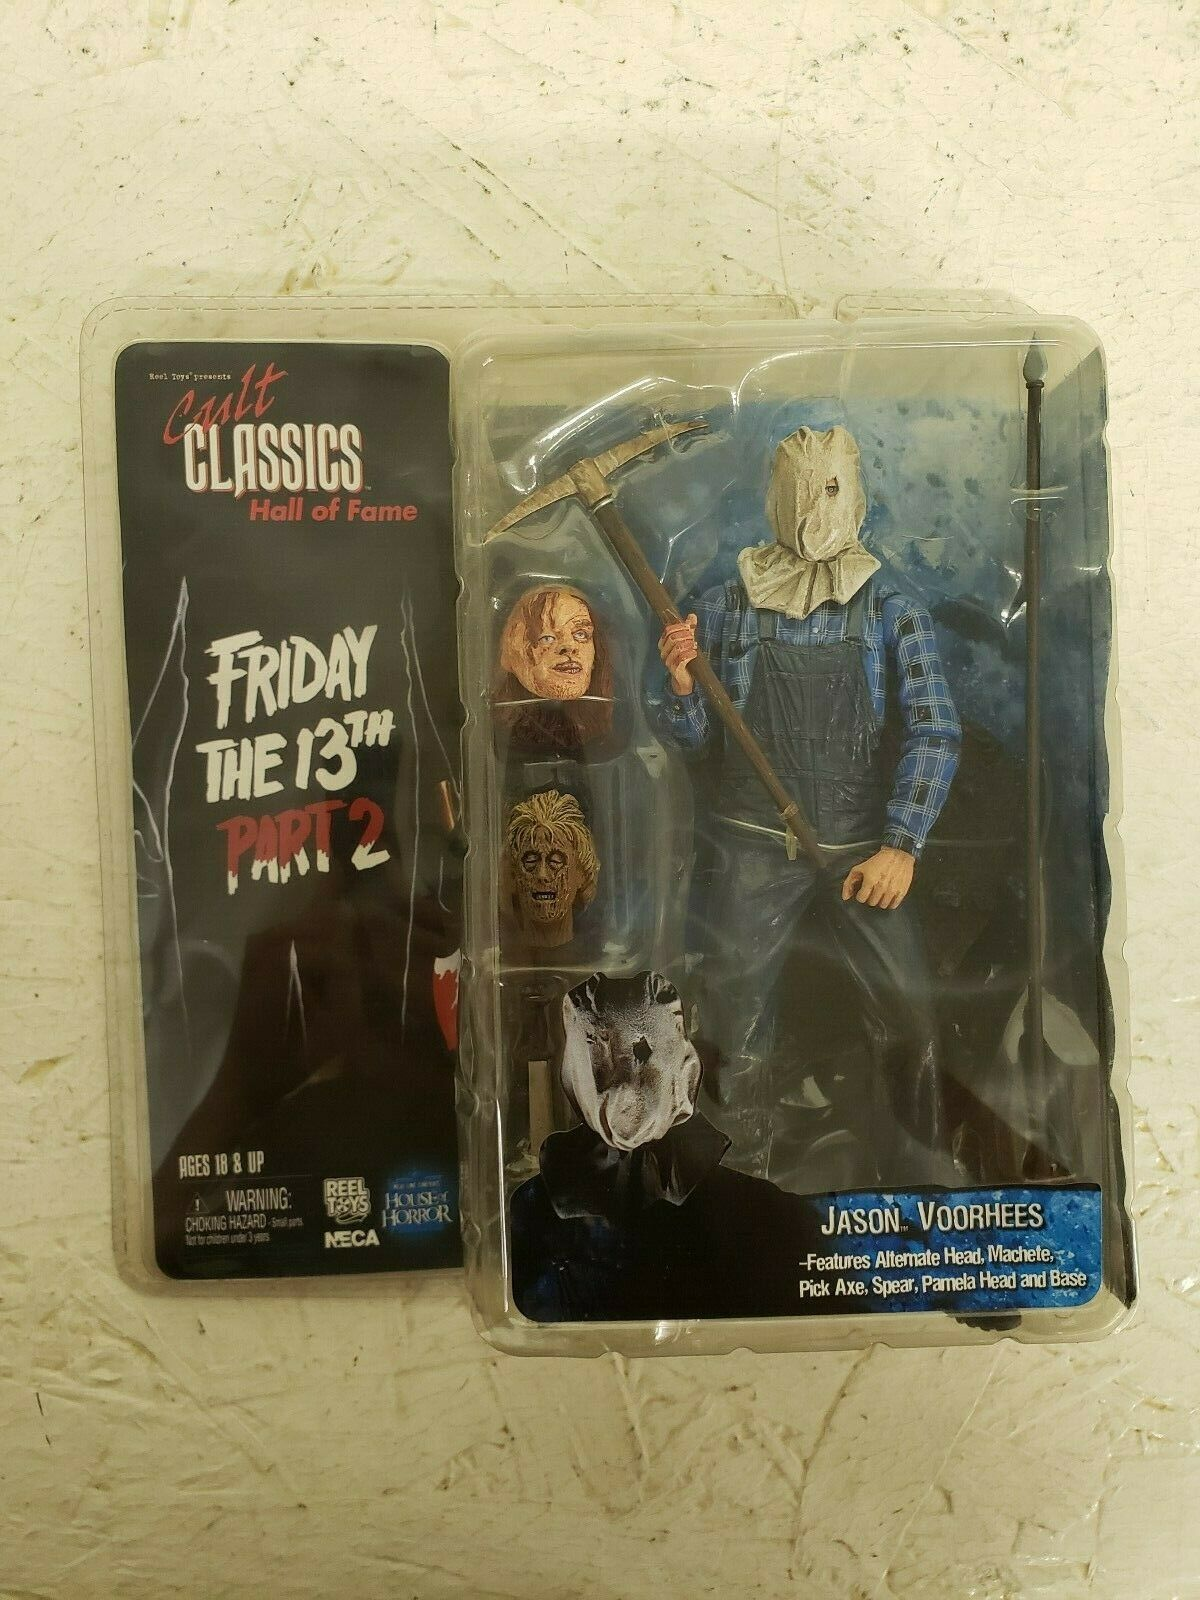 Neca Cult Classics Hall of Fame FRIDAY THE  13th PART 2 JASON VOORHEES figure  bon prix